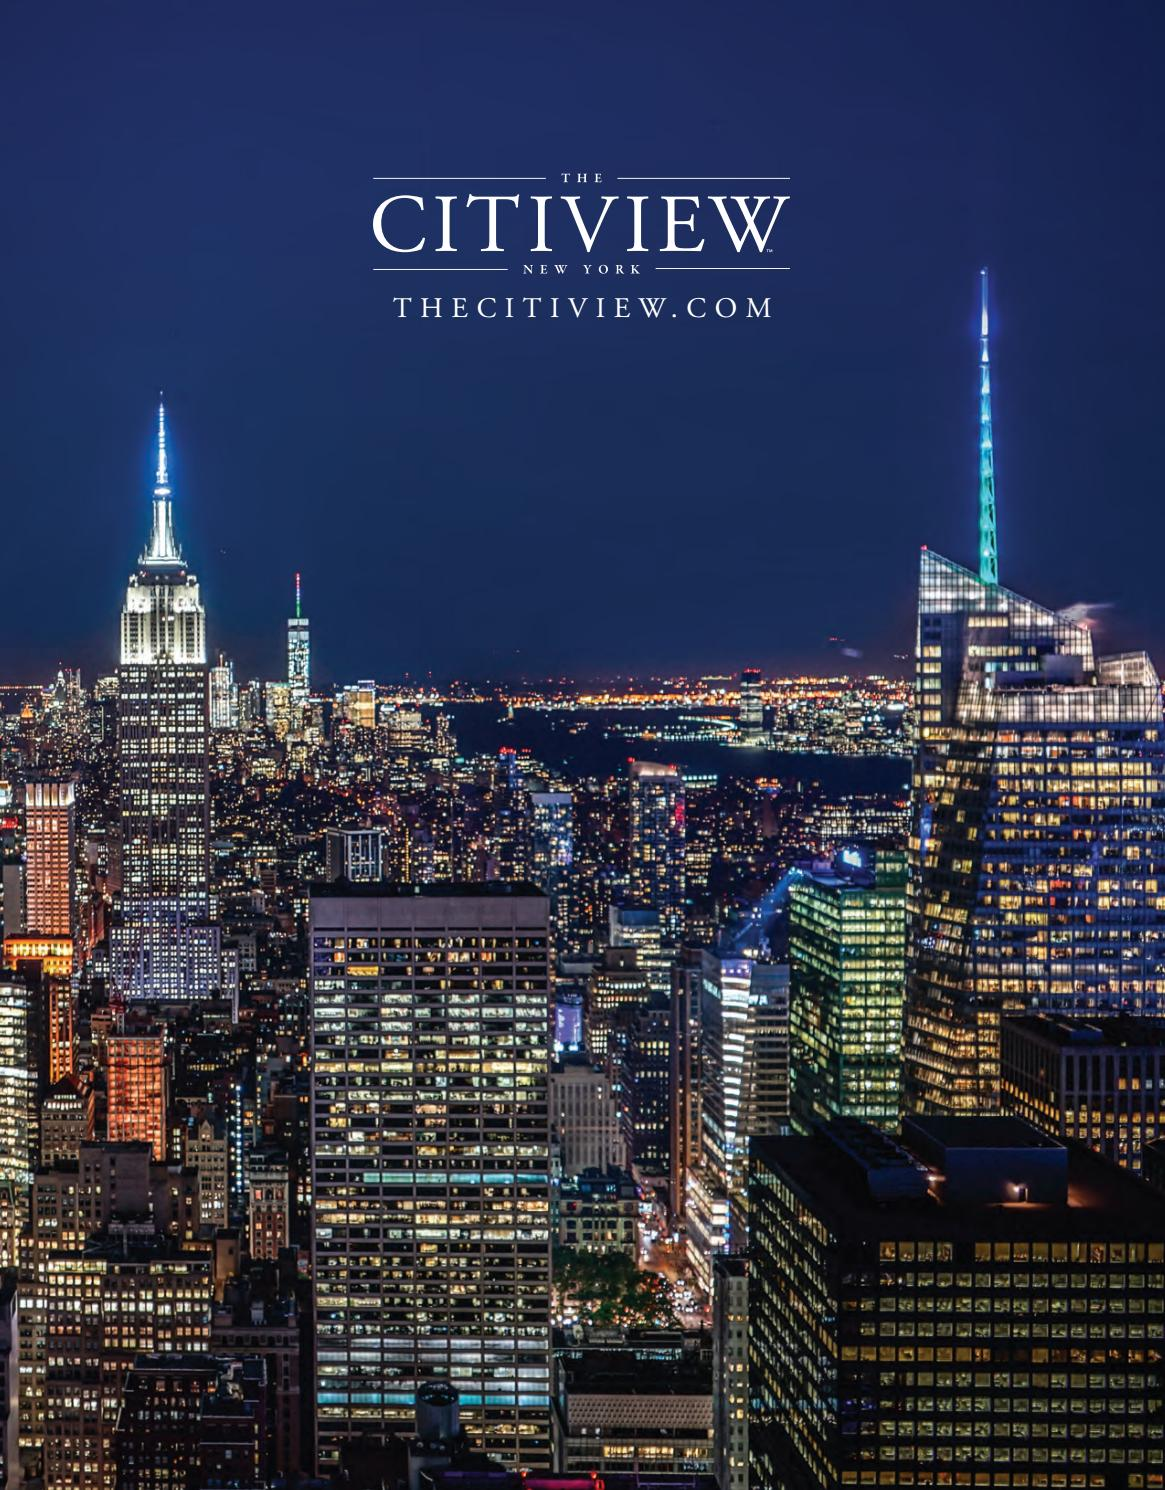 Cucina Restaurant Rockefeller Center The Citiview Nyc 2019 By Citiview Publications Issuu